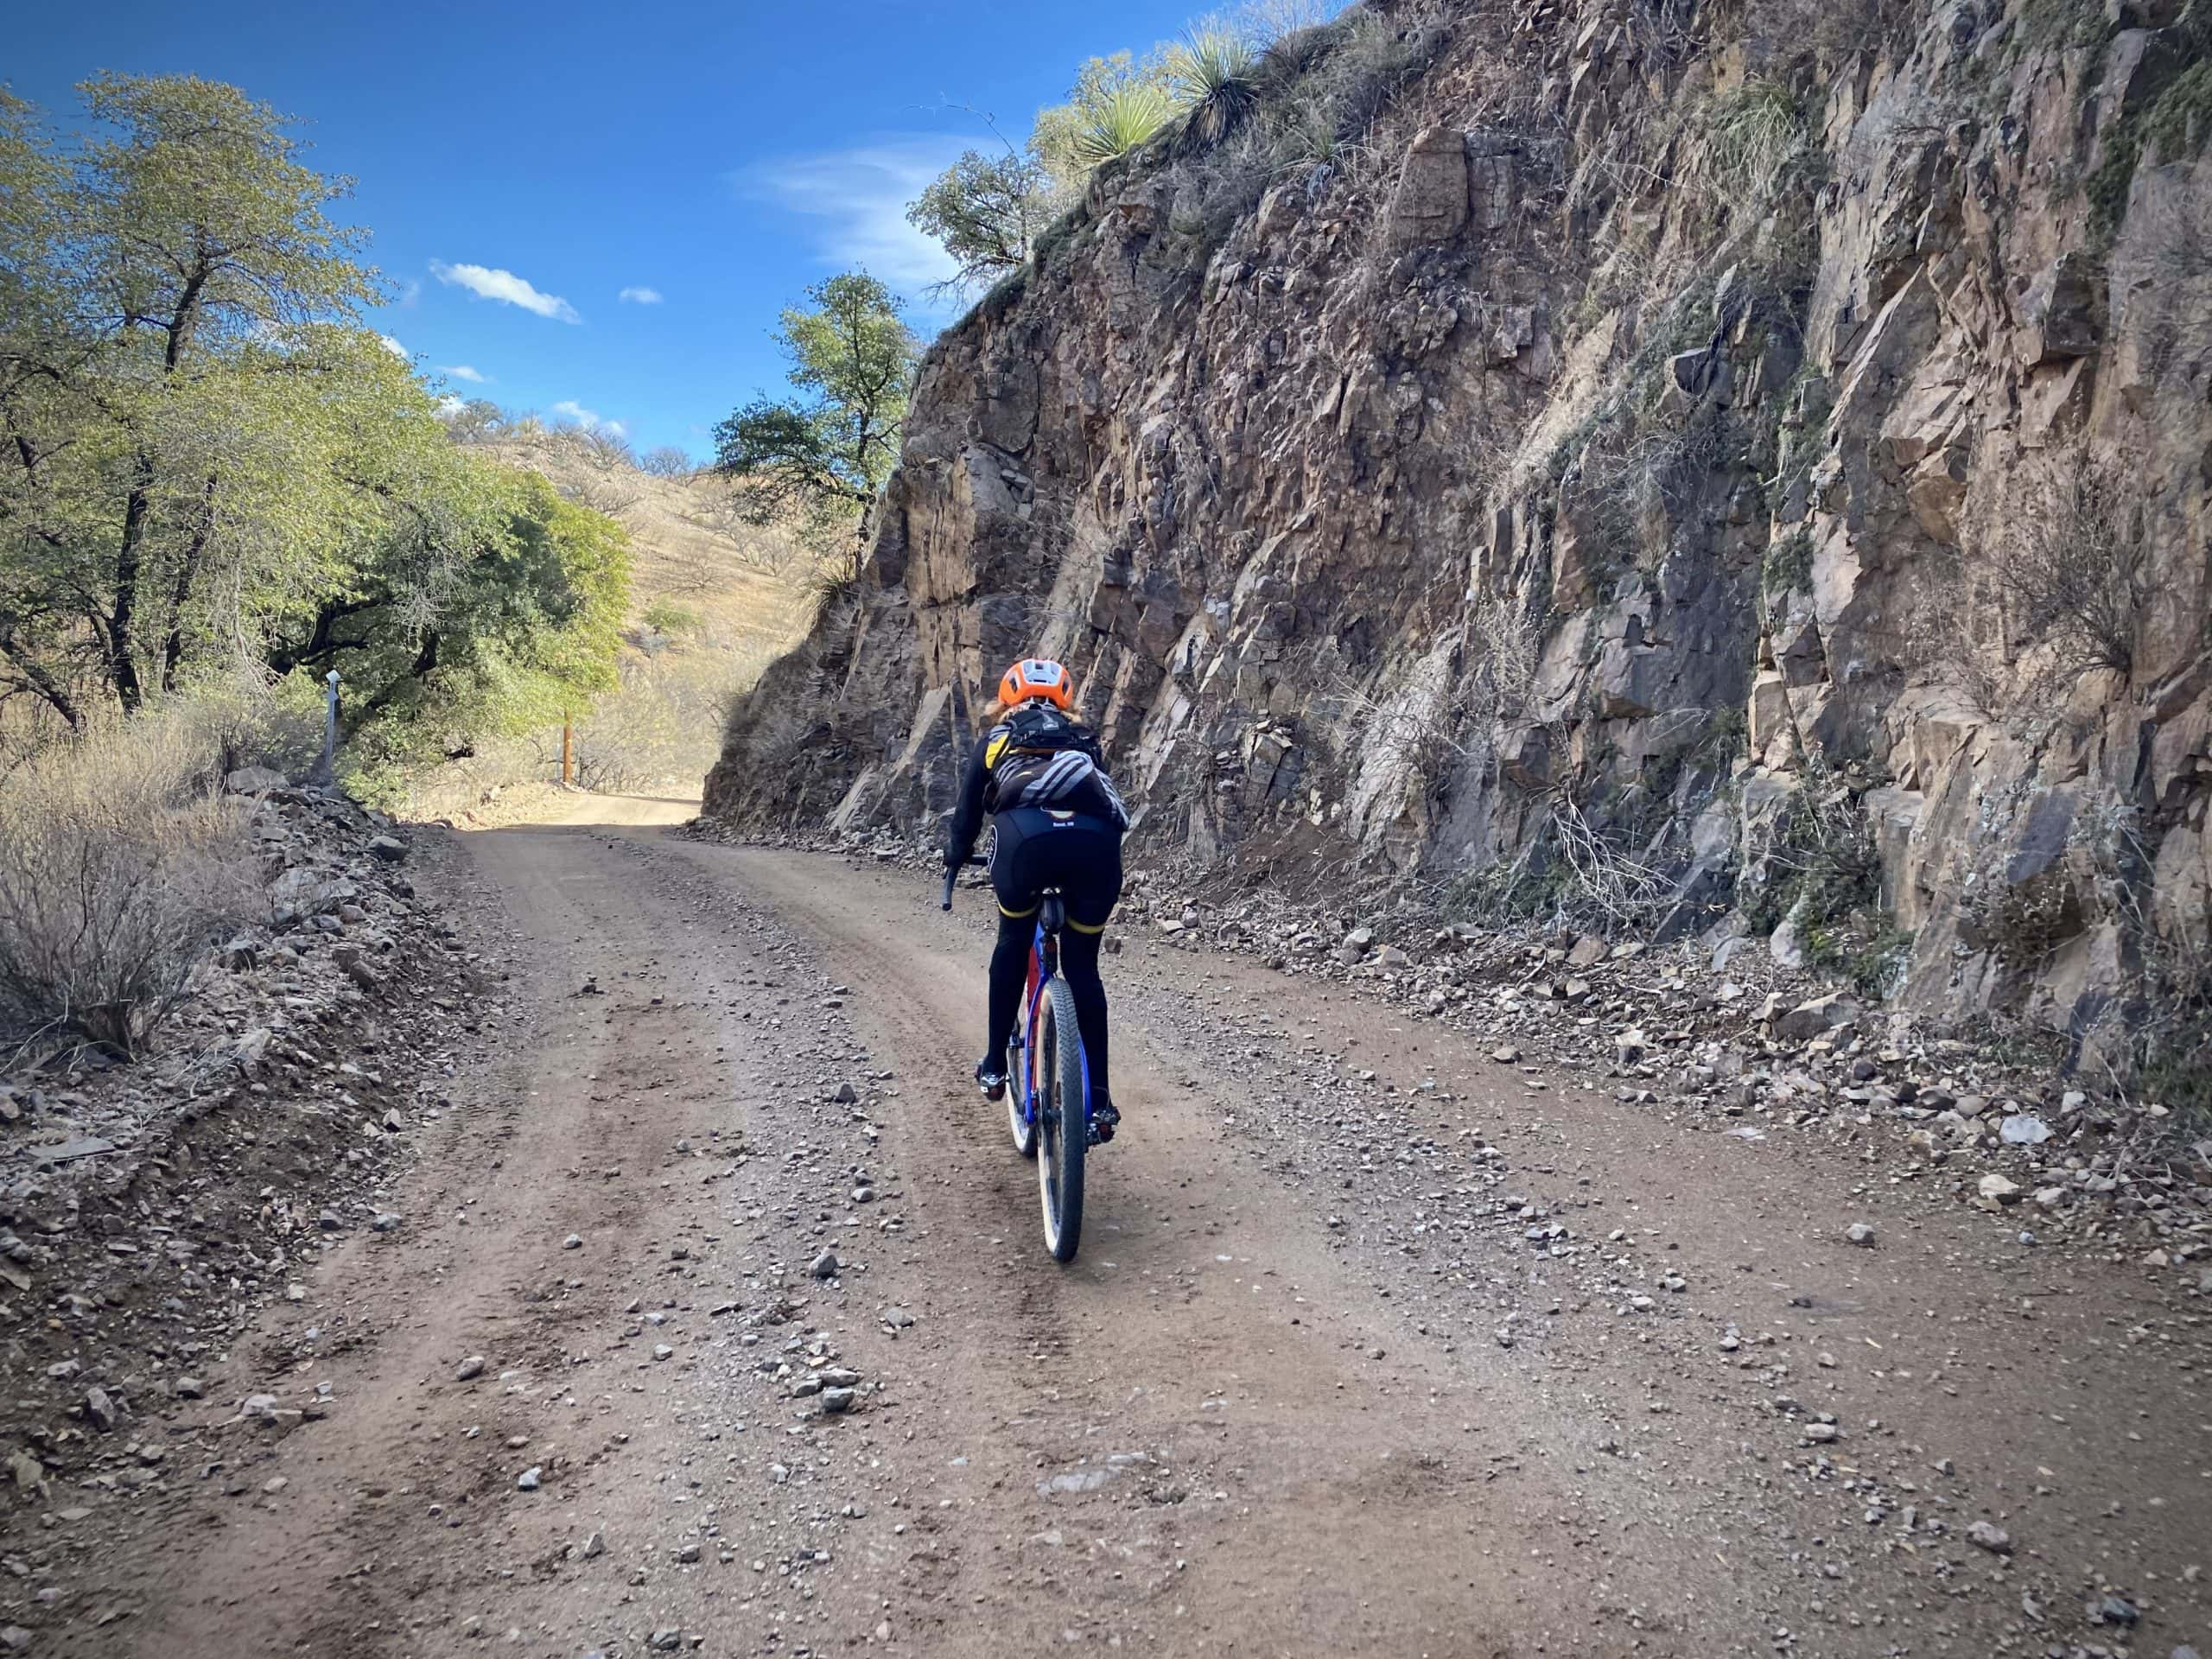 Bike rider on gravel road with rock, cliff wall to the right near Patagonia, AZ.